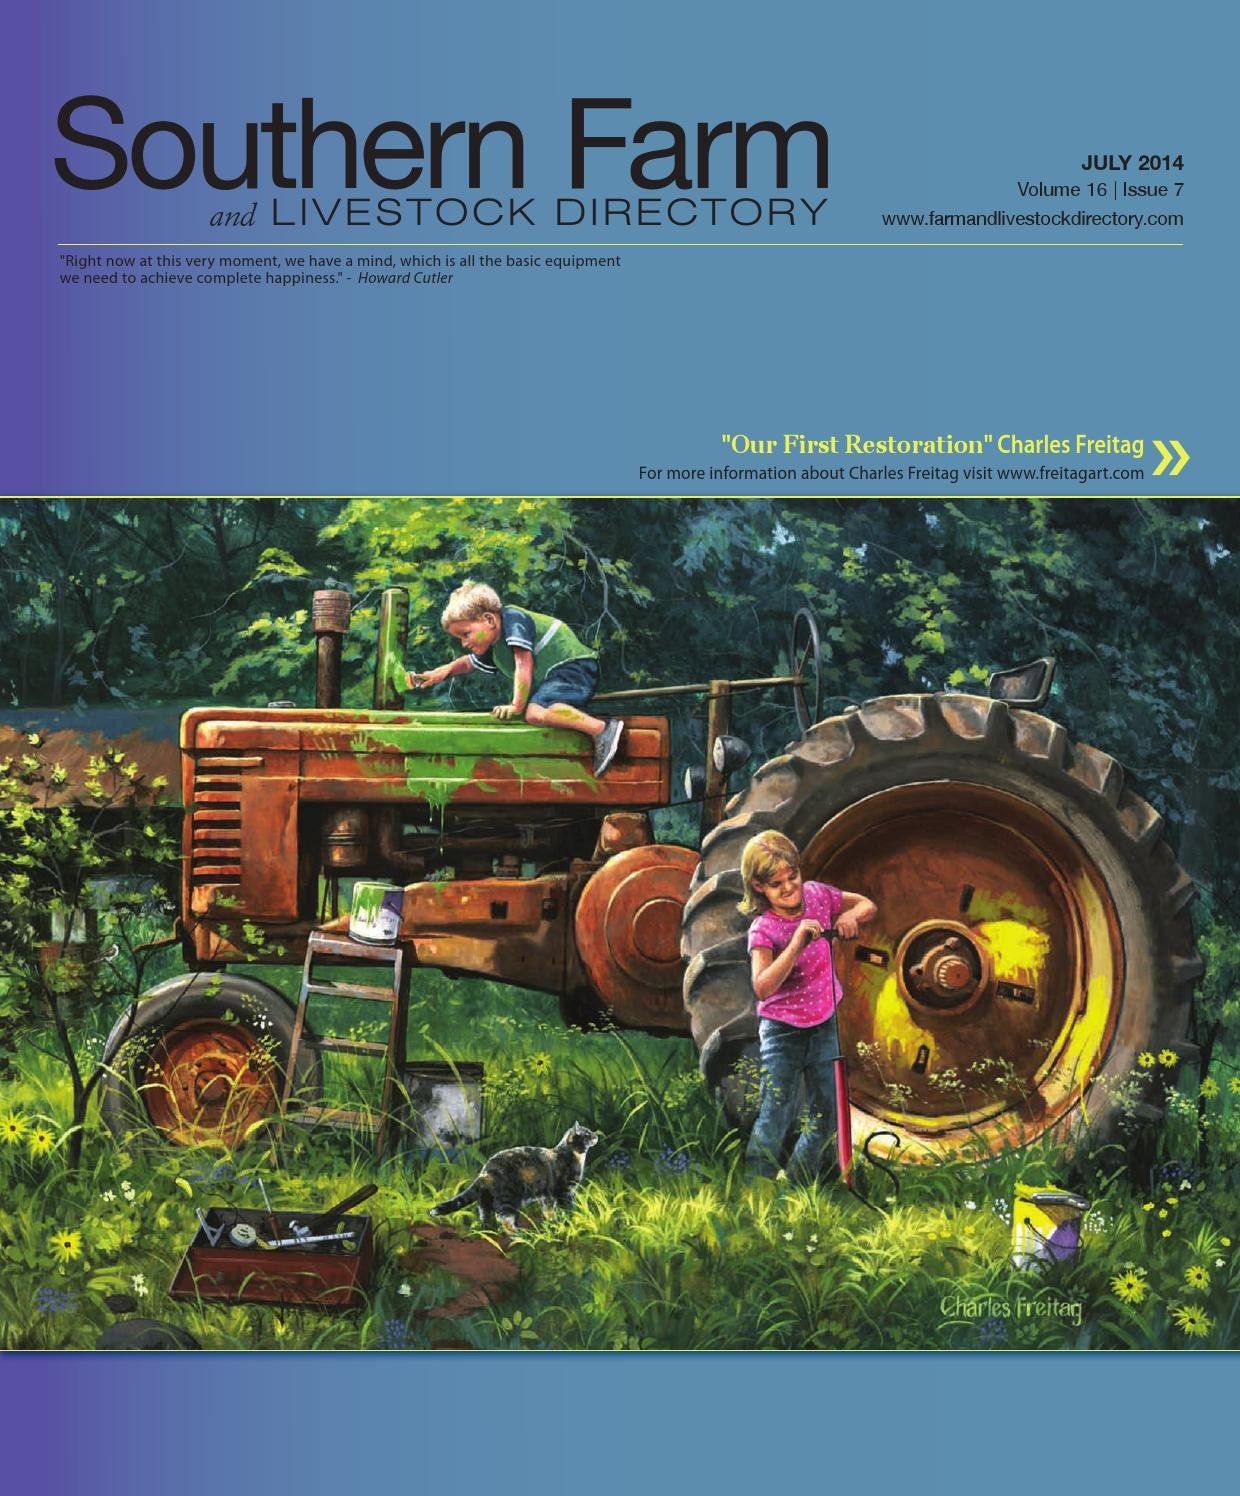 Southern Farm And Livestock Directory | July 2014 by Five